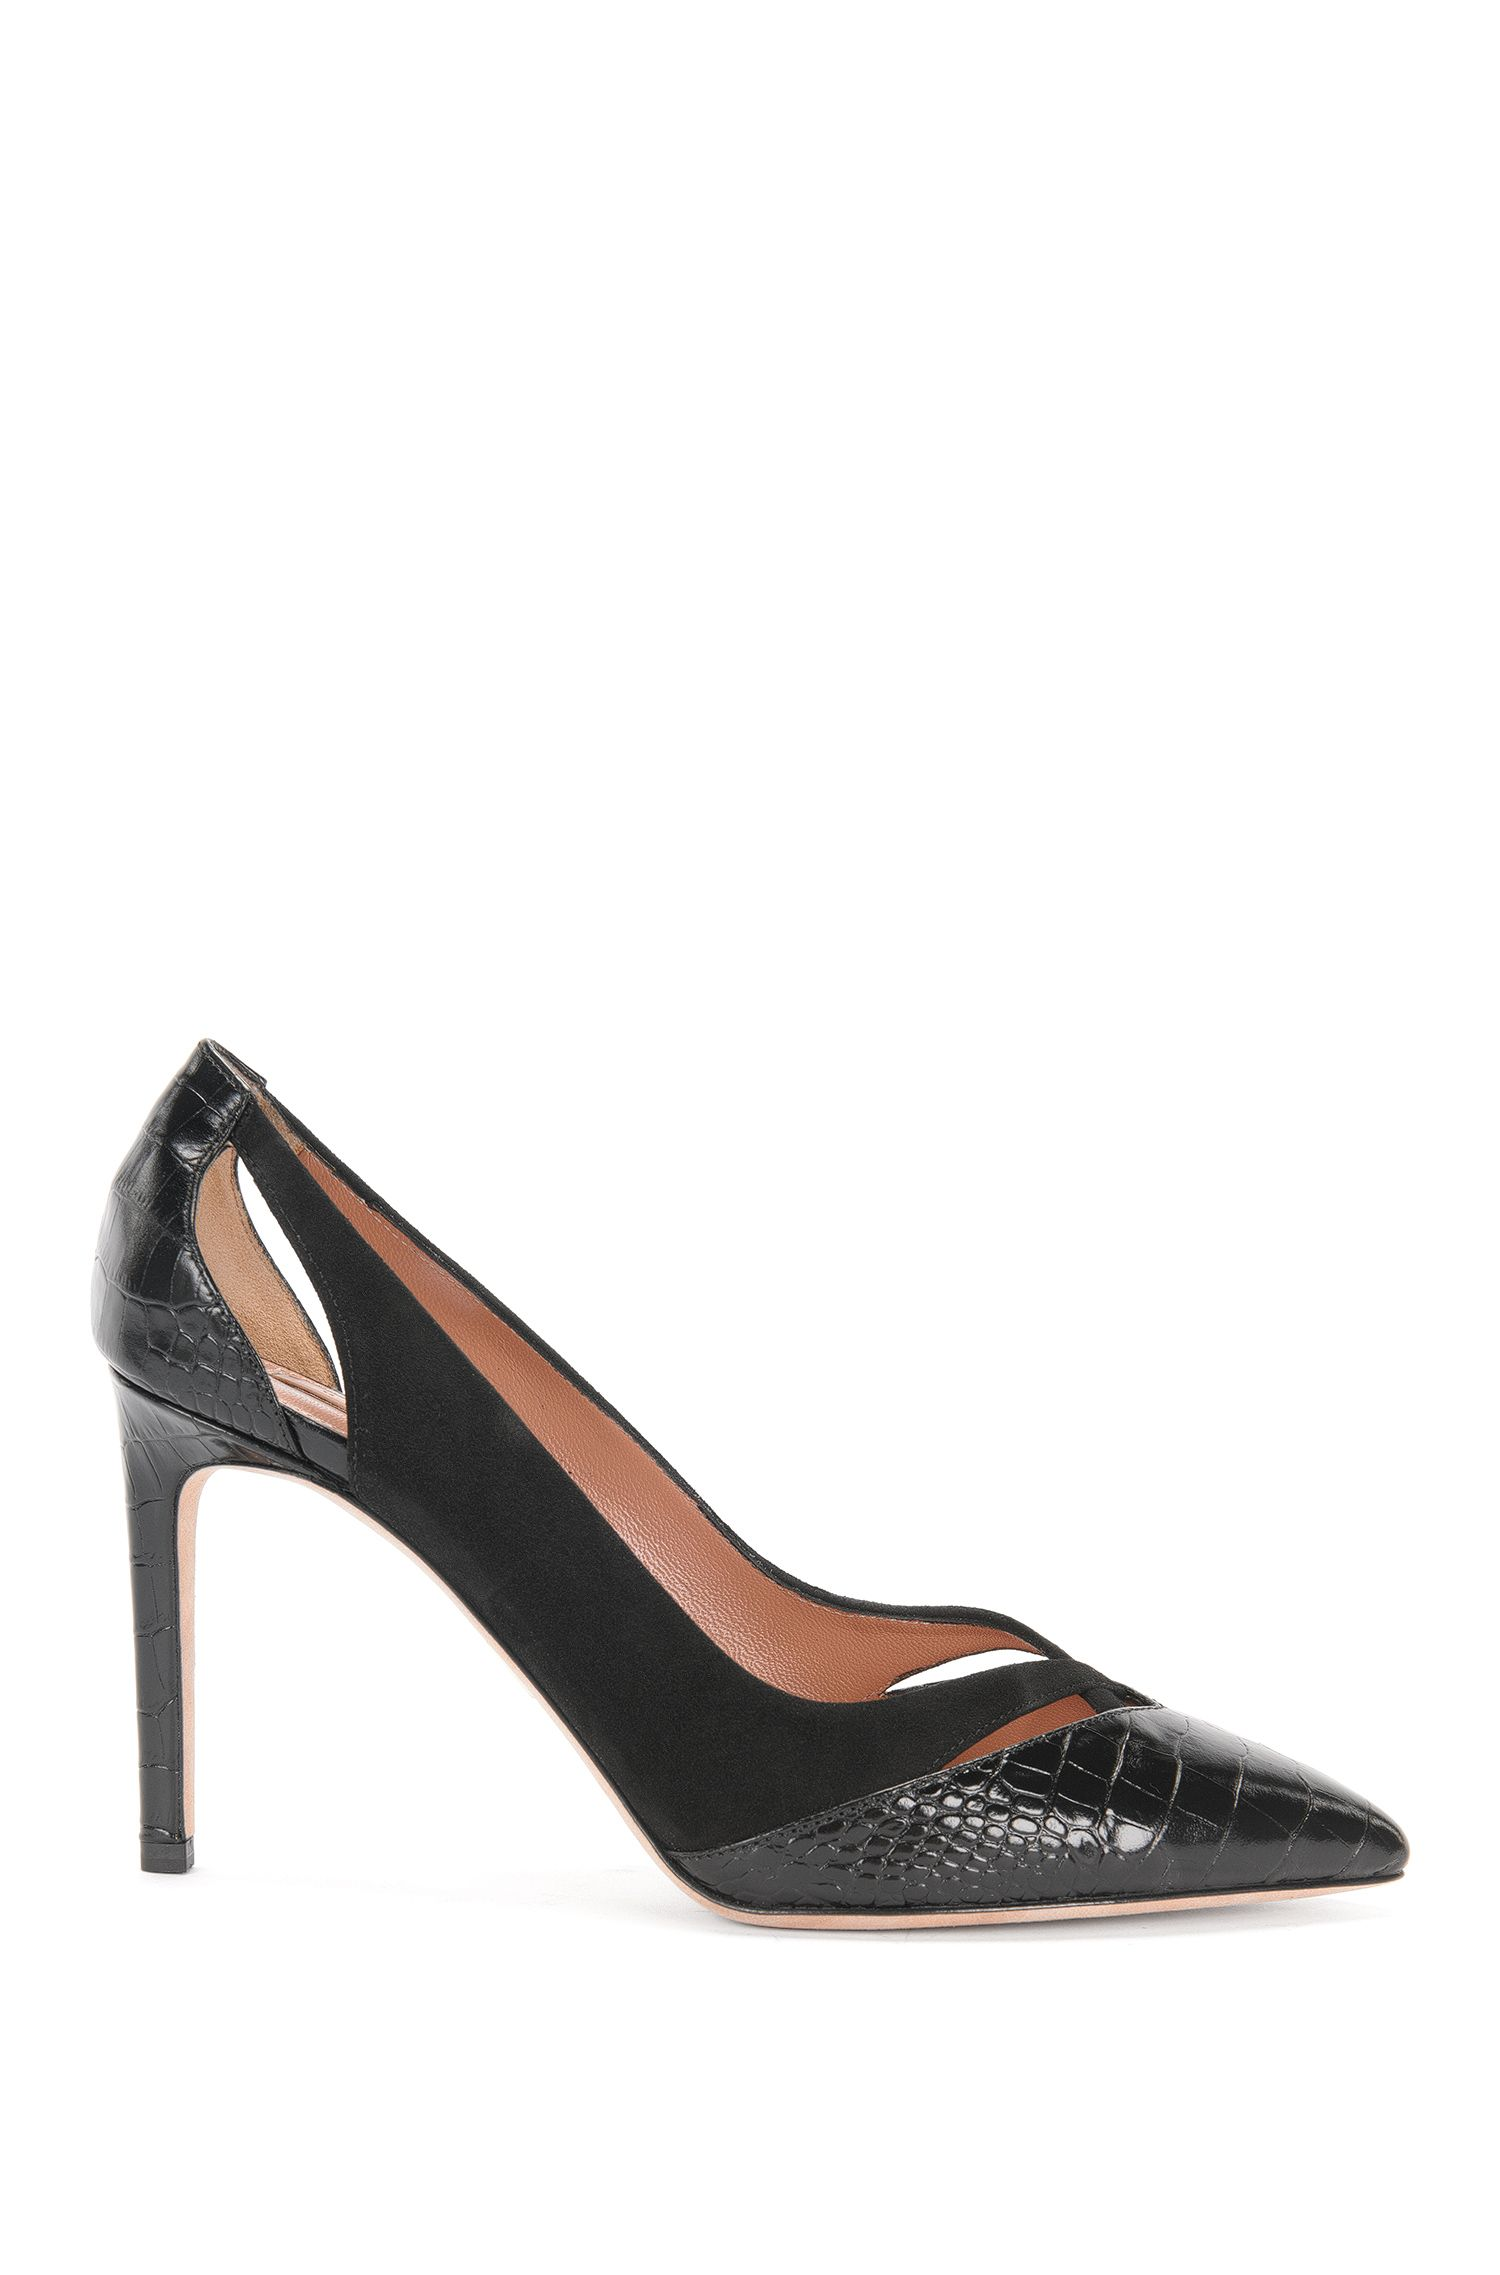 'Twist P90 C' | Italian Calfskin Cut-Out Pumps